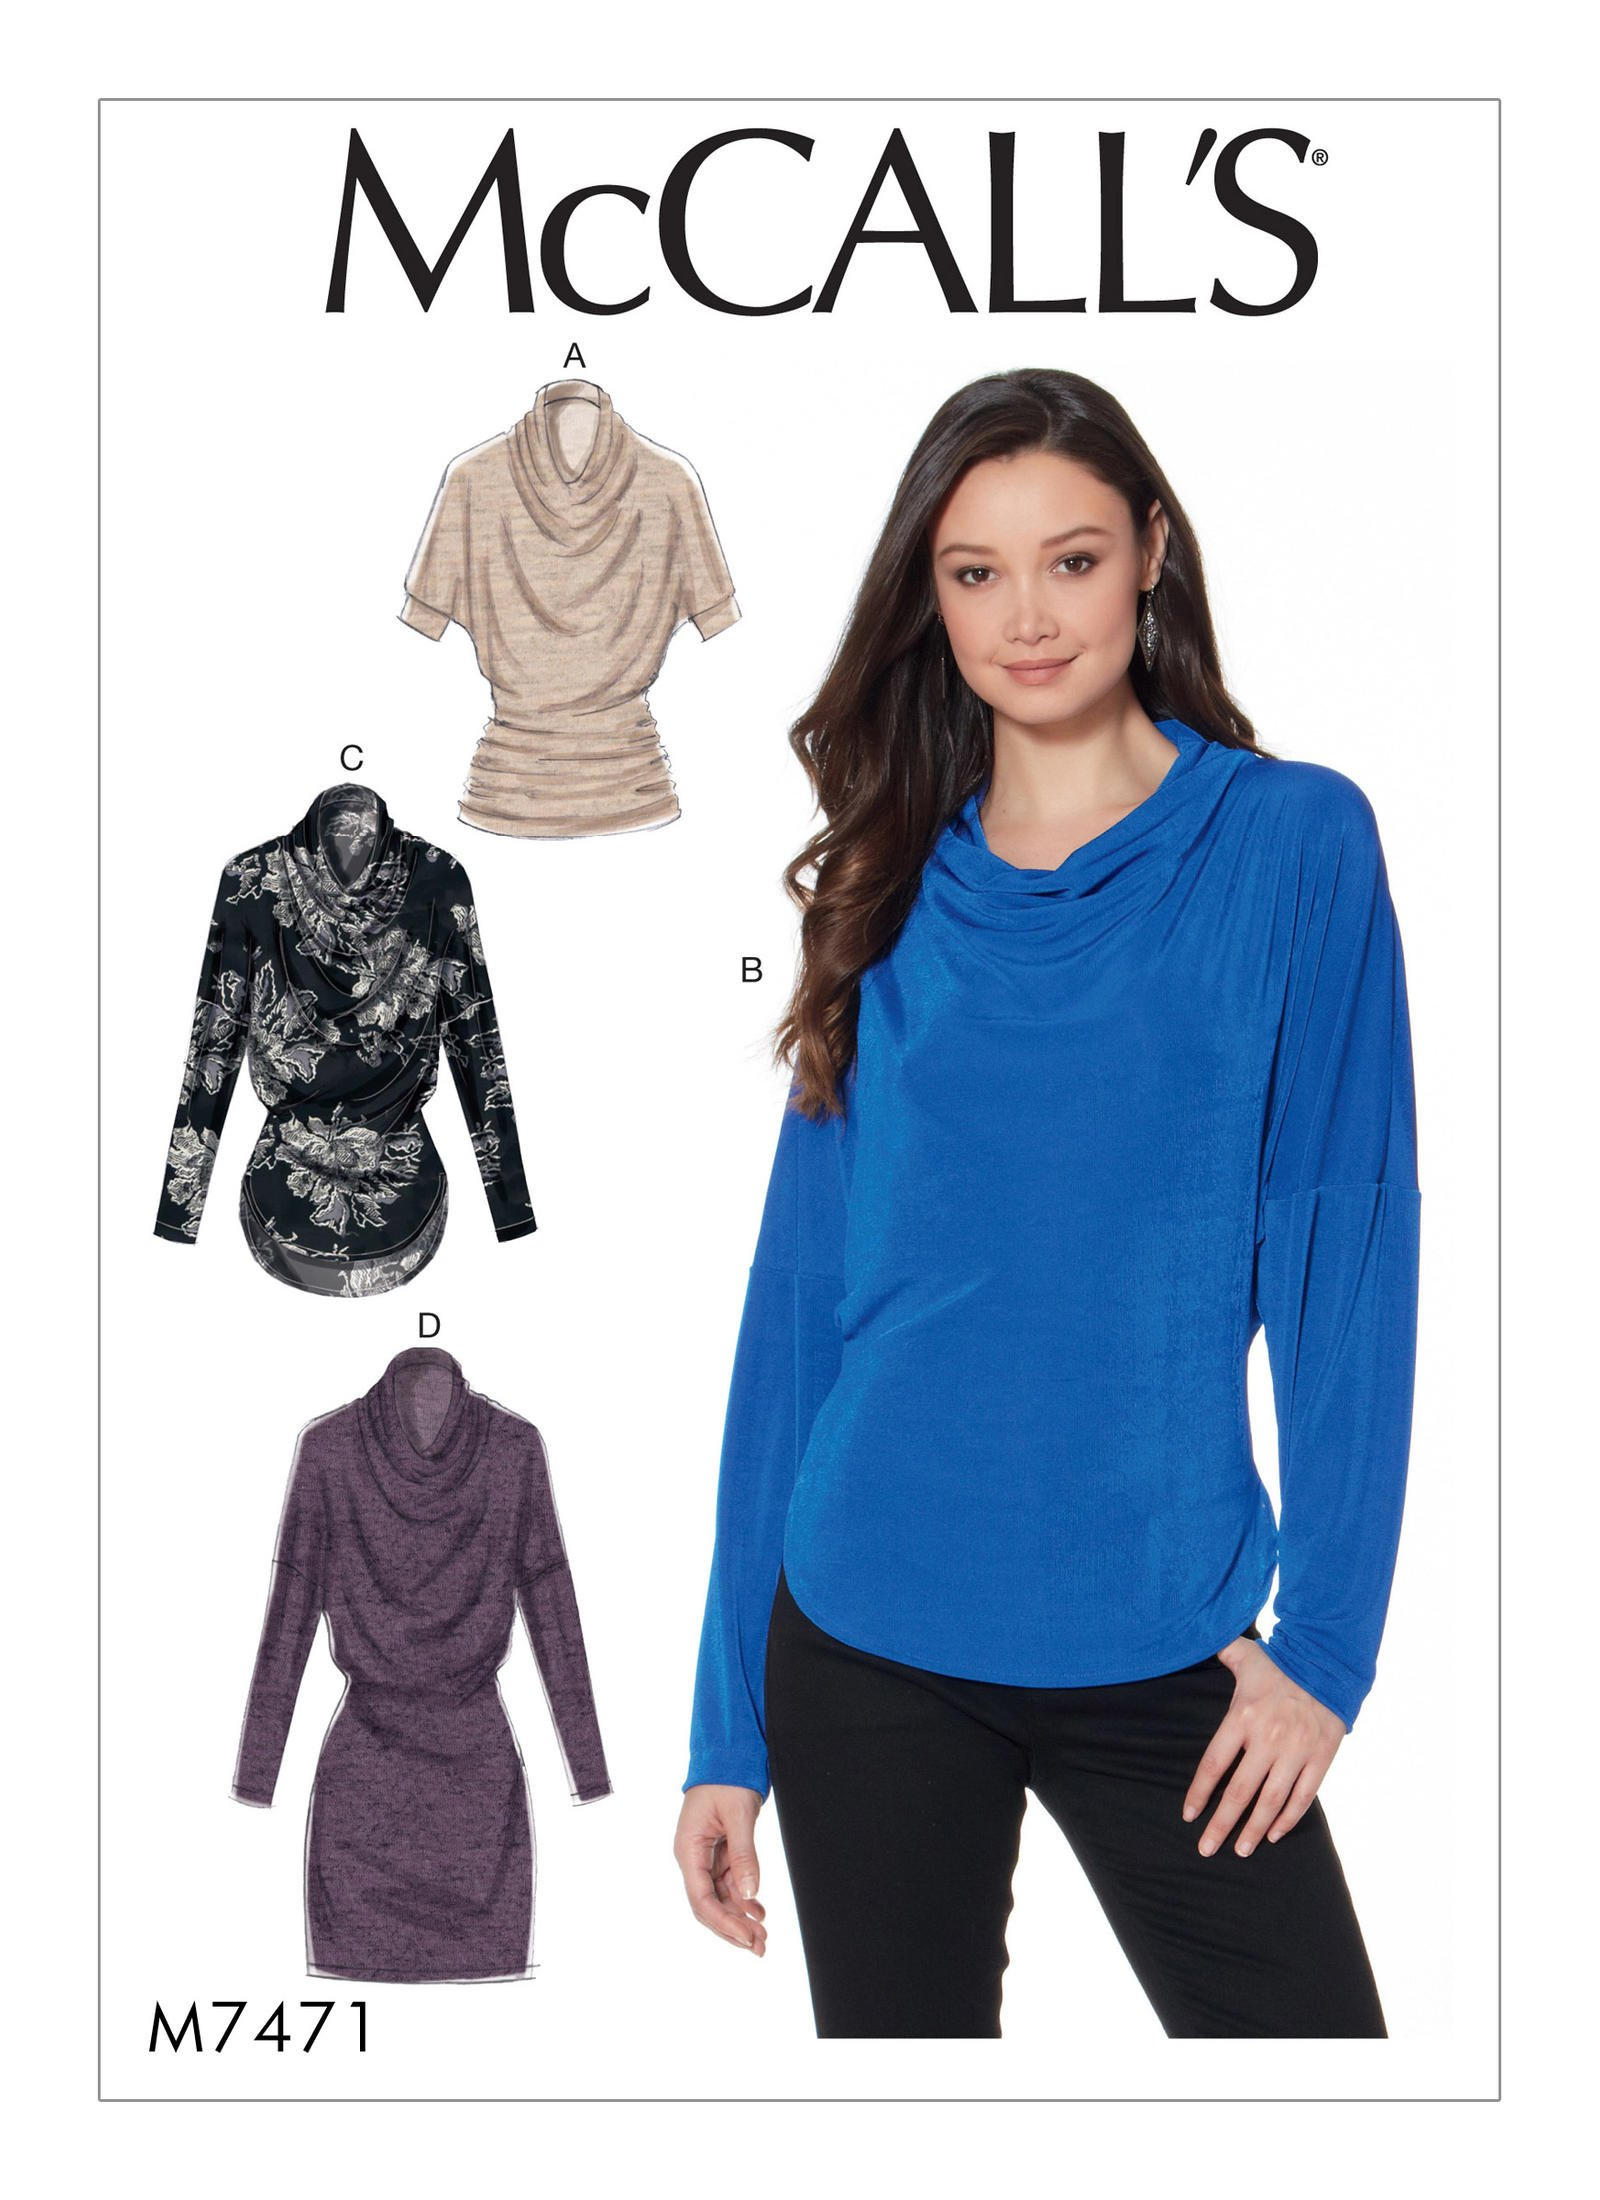 McCall's 7471 Misses' Knit Cowl-Neck Tops and Tunic